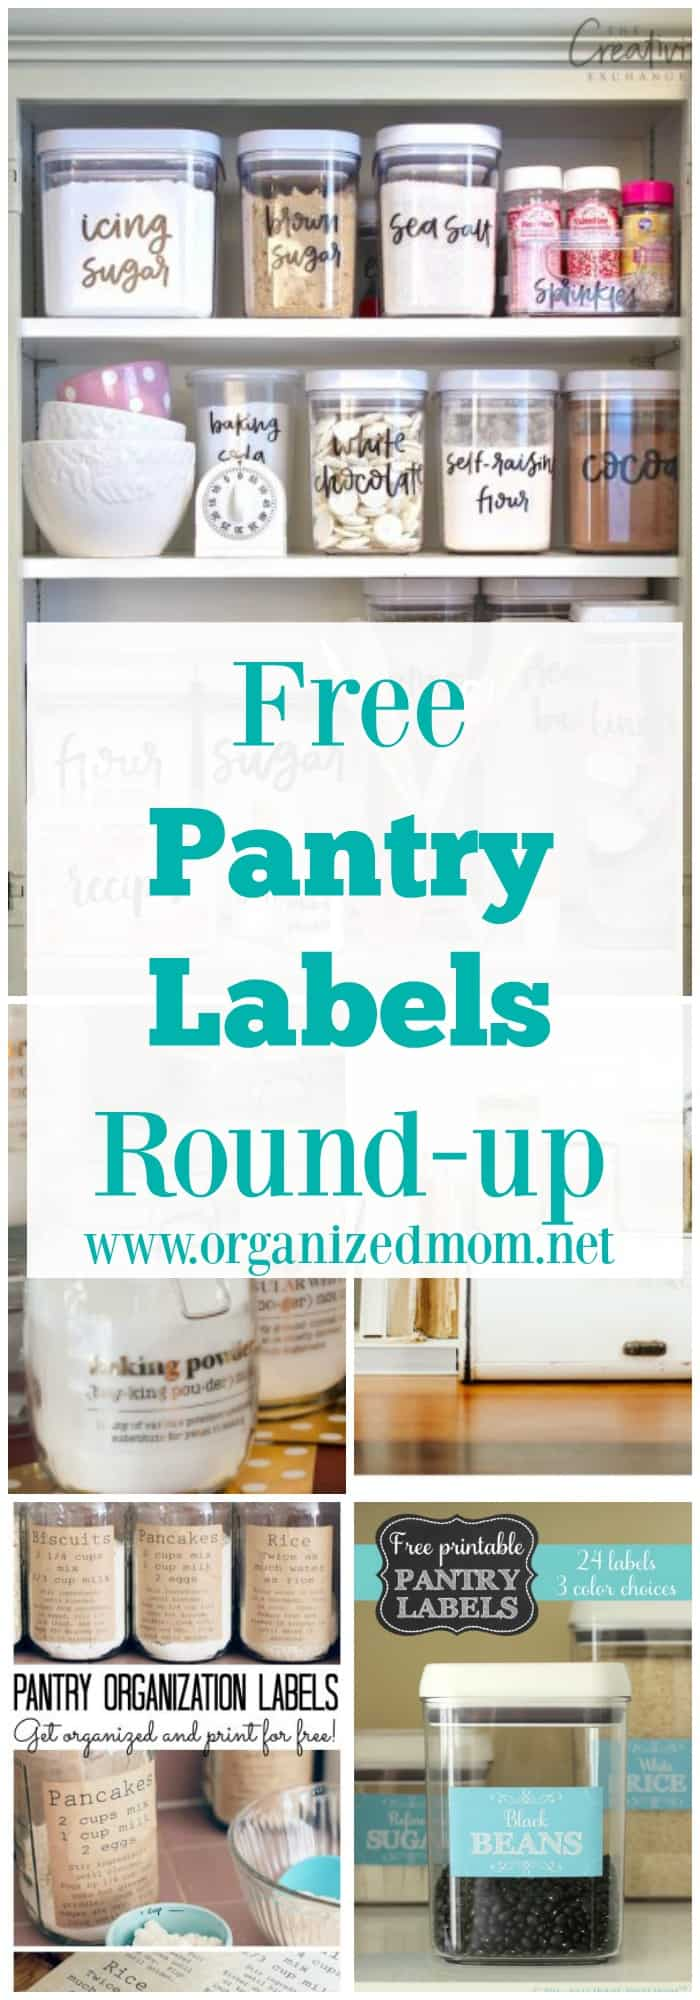 free-pantry-labels-roundup